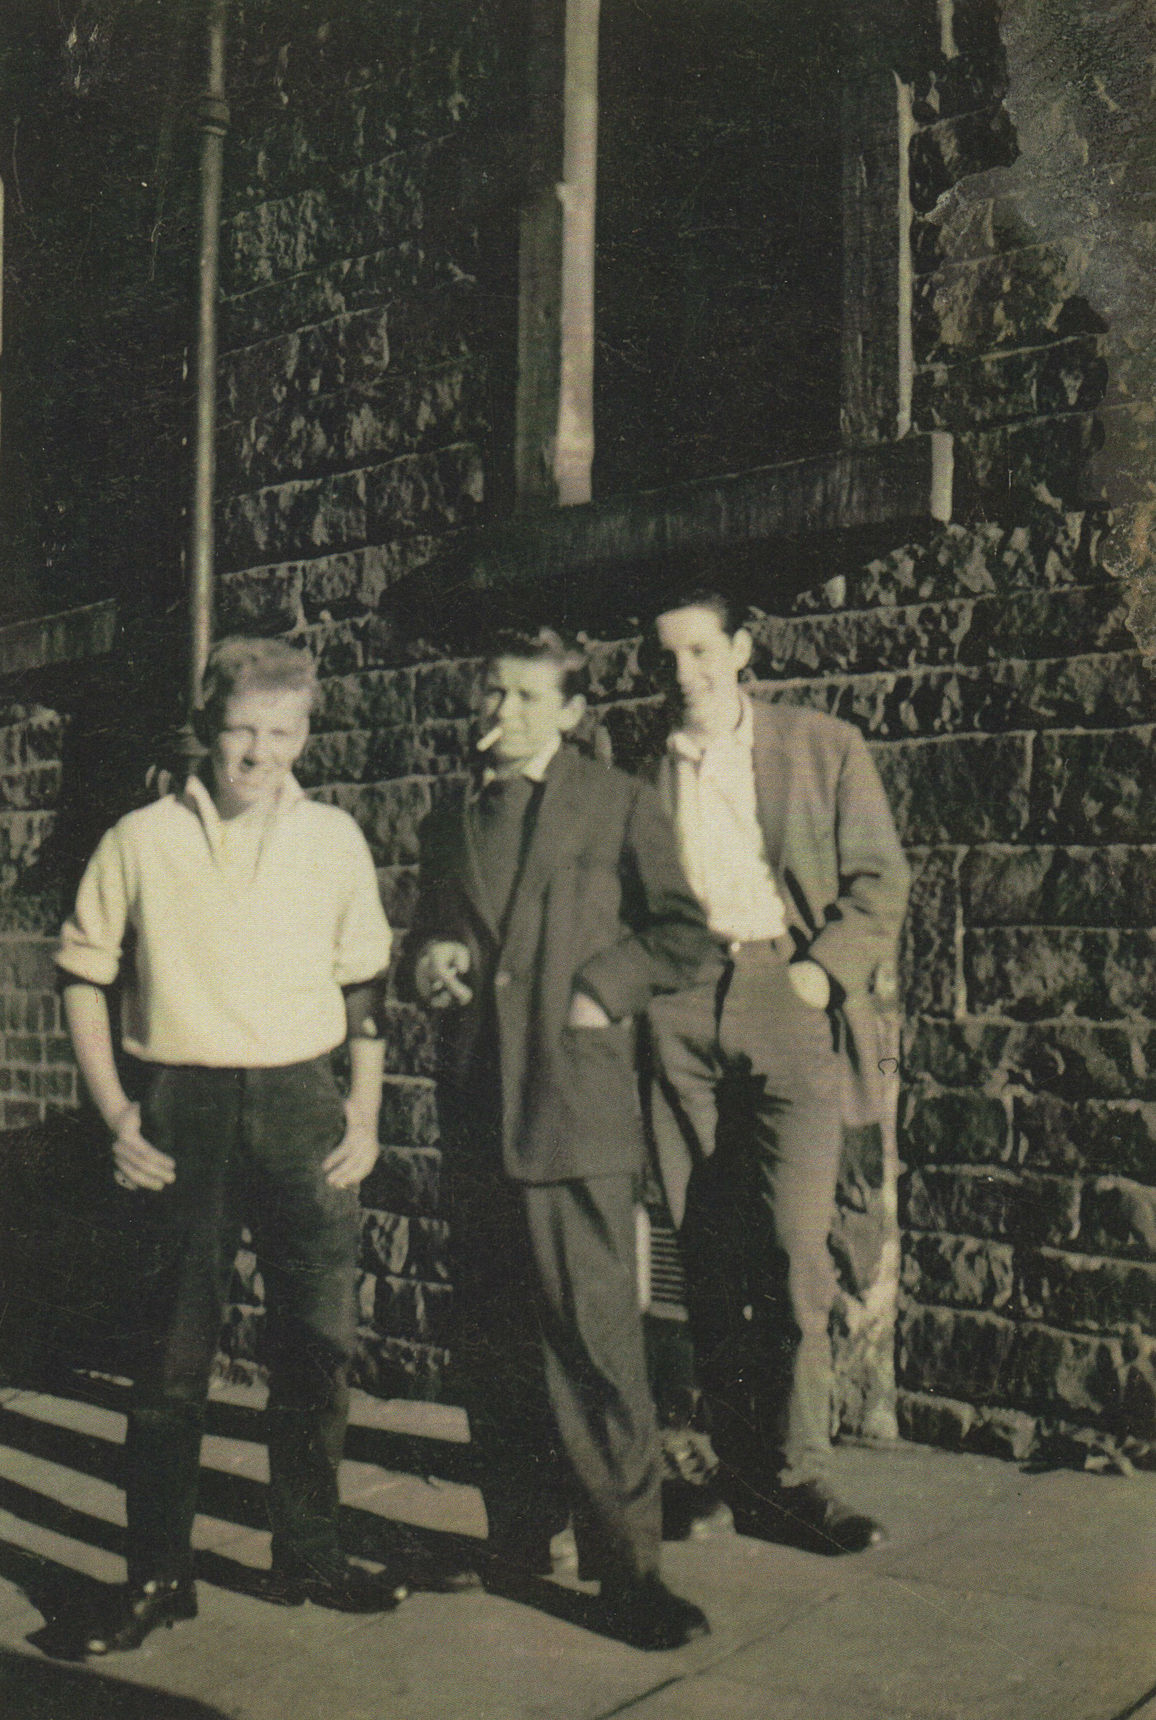 57 The boys outside my 33 Dean Path were David Clabby, Henry Marshall, and Edward Nolan,